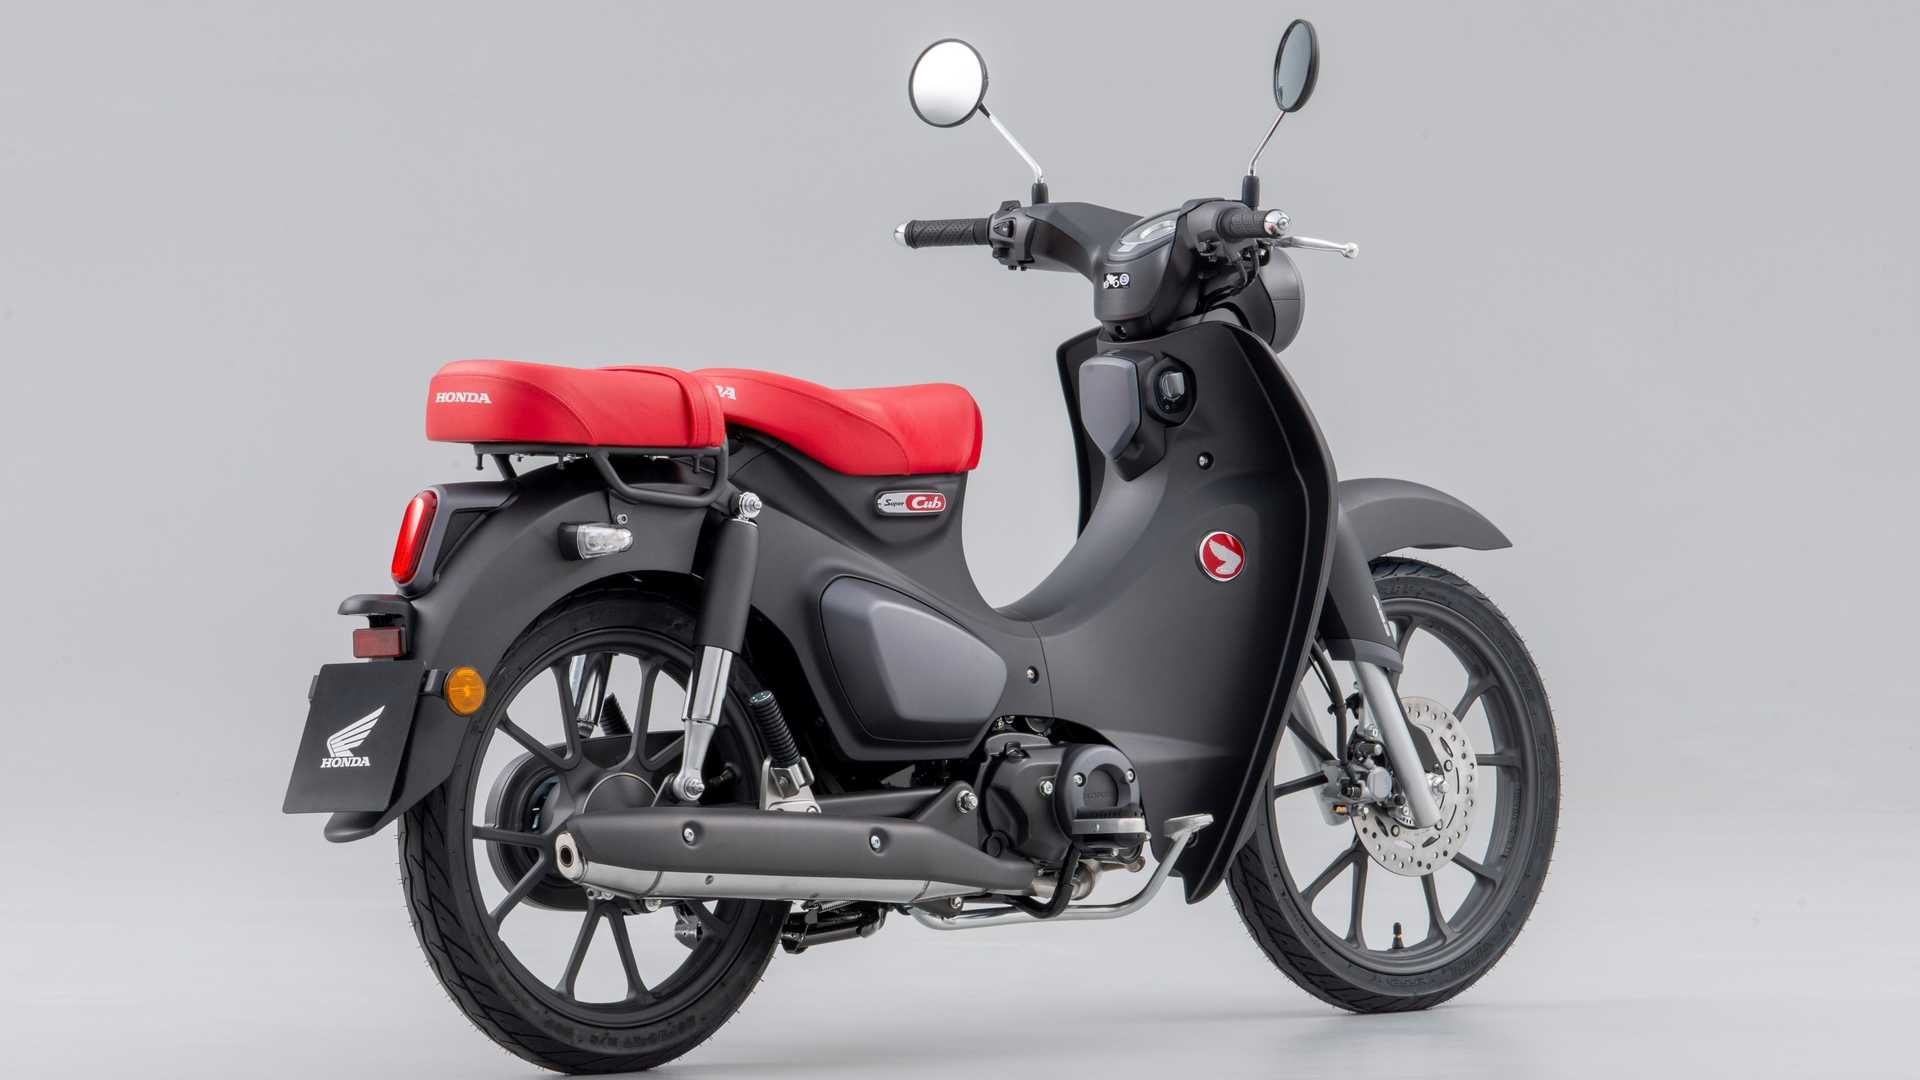 2022honda Super cub, 2022honda Super cub, honda super cub,how much does,honda super cub cost, is honda super cub available in usa,how to drive a honda super cub,harga honda super cub 2020,how much is the new honda super cub,2022-honda-super,2022-honda-super,2022-honda-super